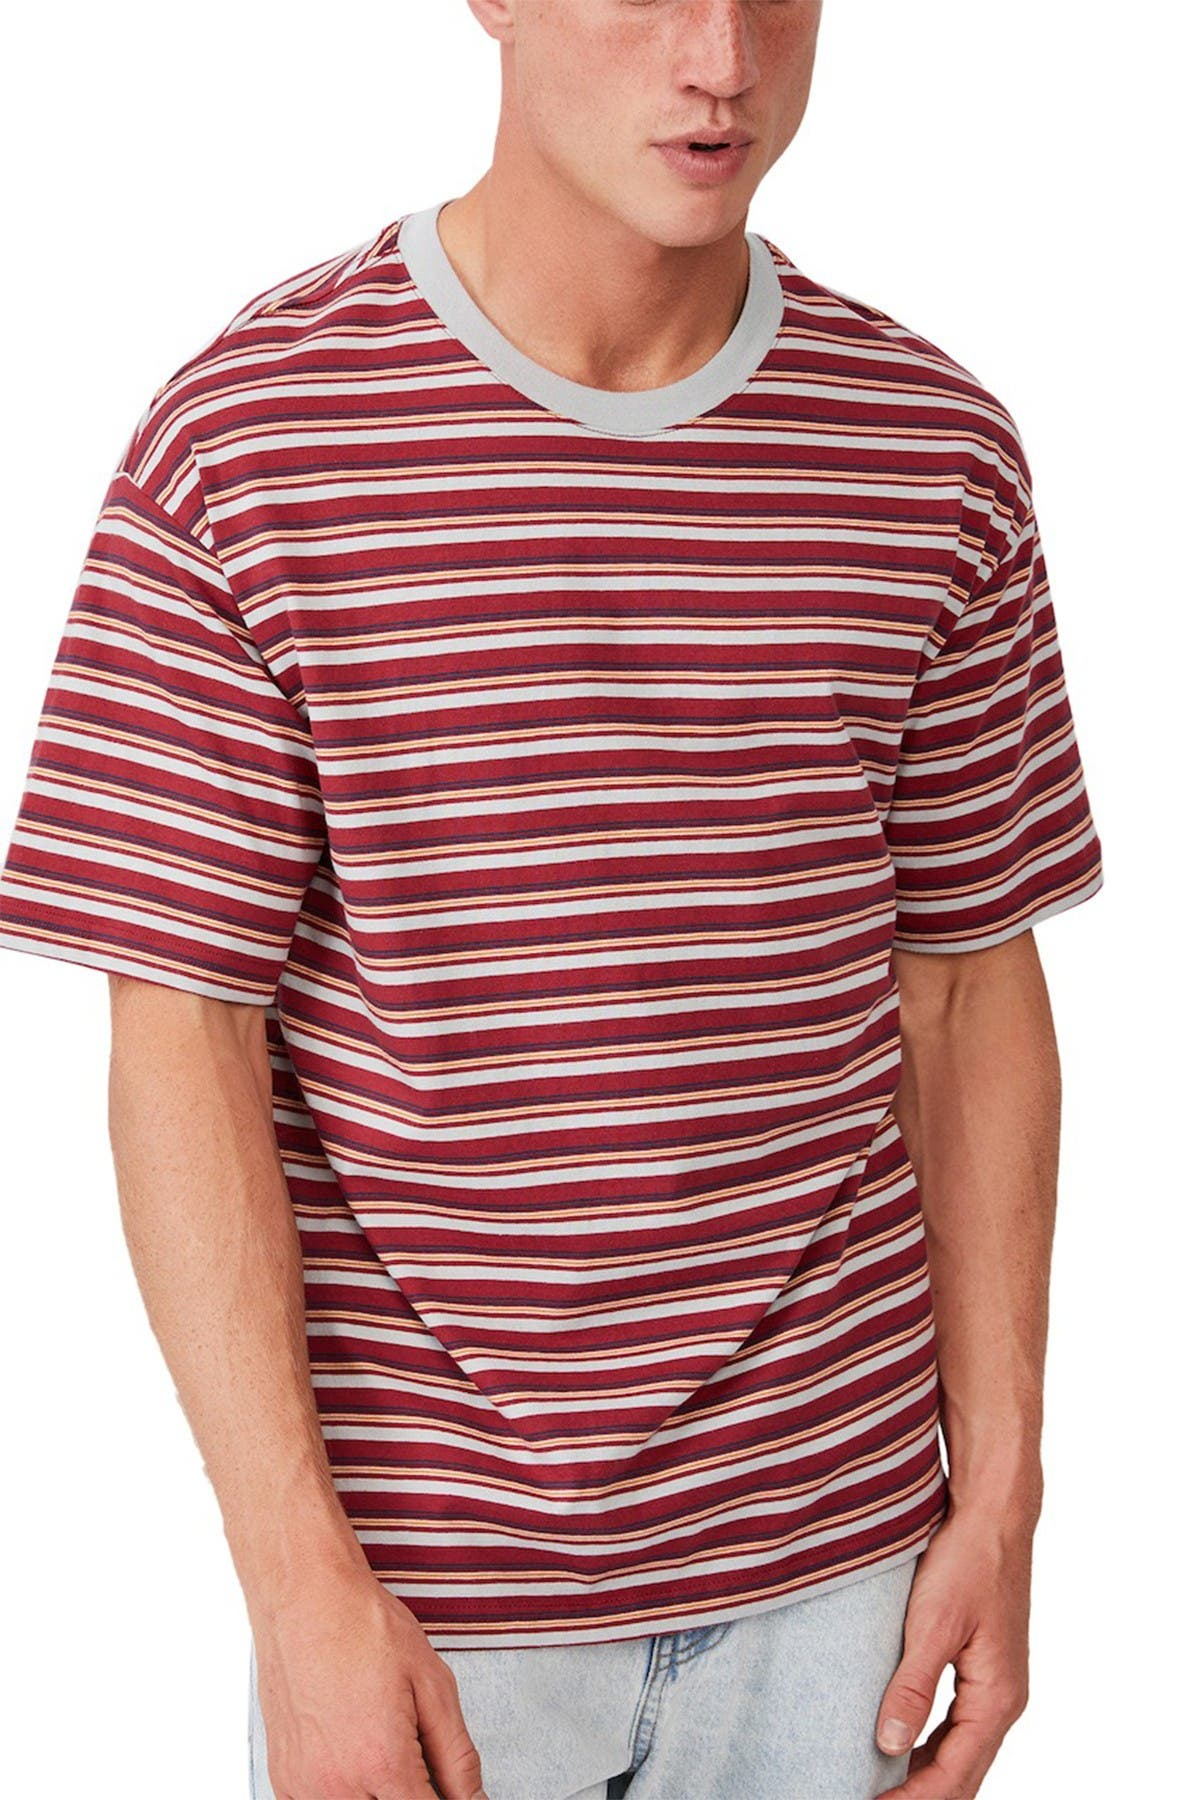 Cotton On Dylan Everyday T-Shirt at Nordstrom Rack